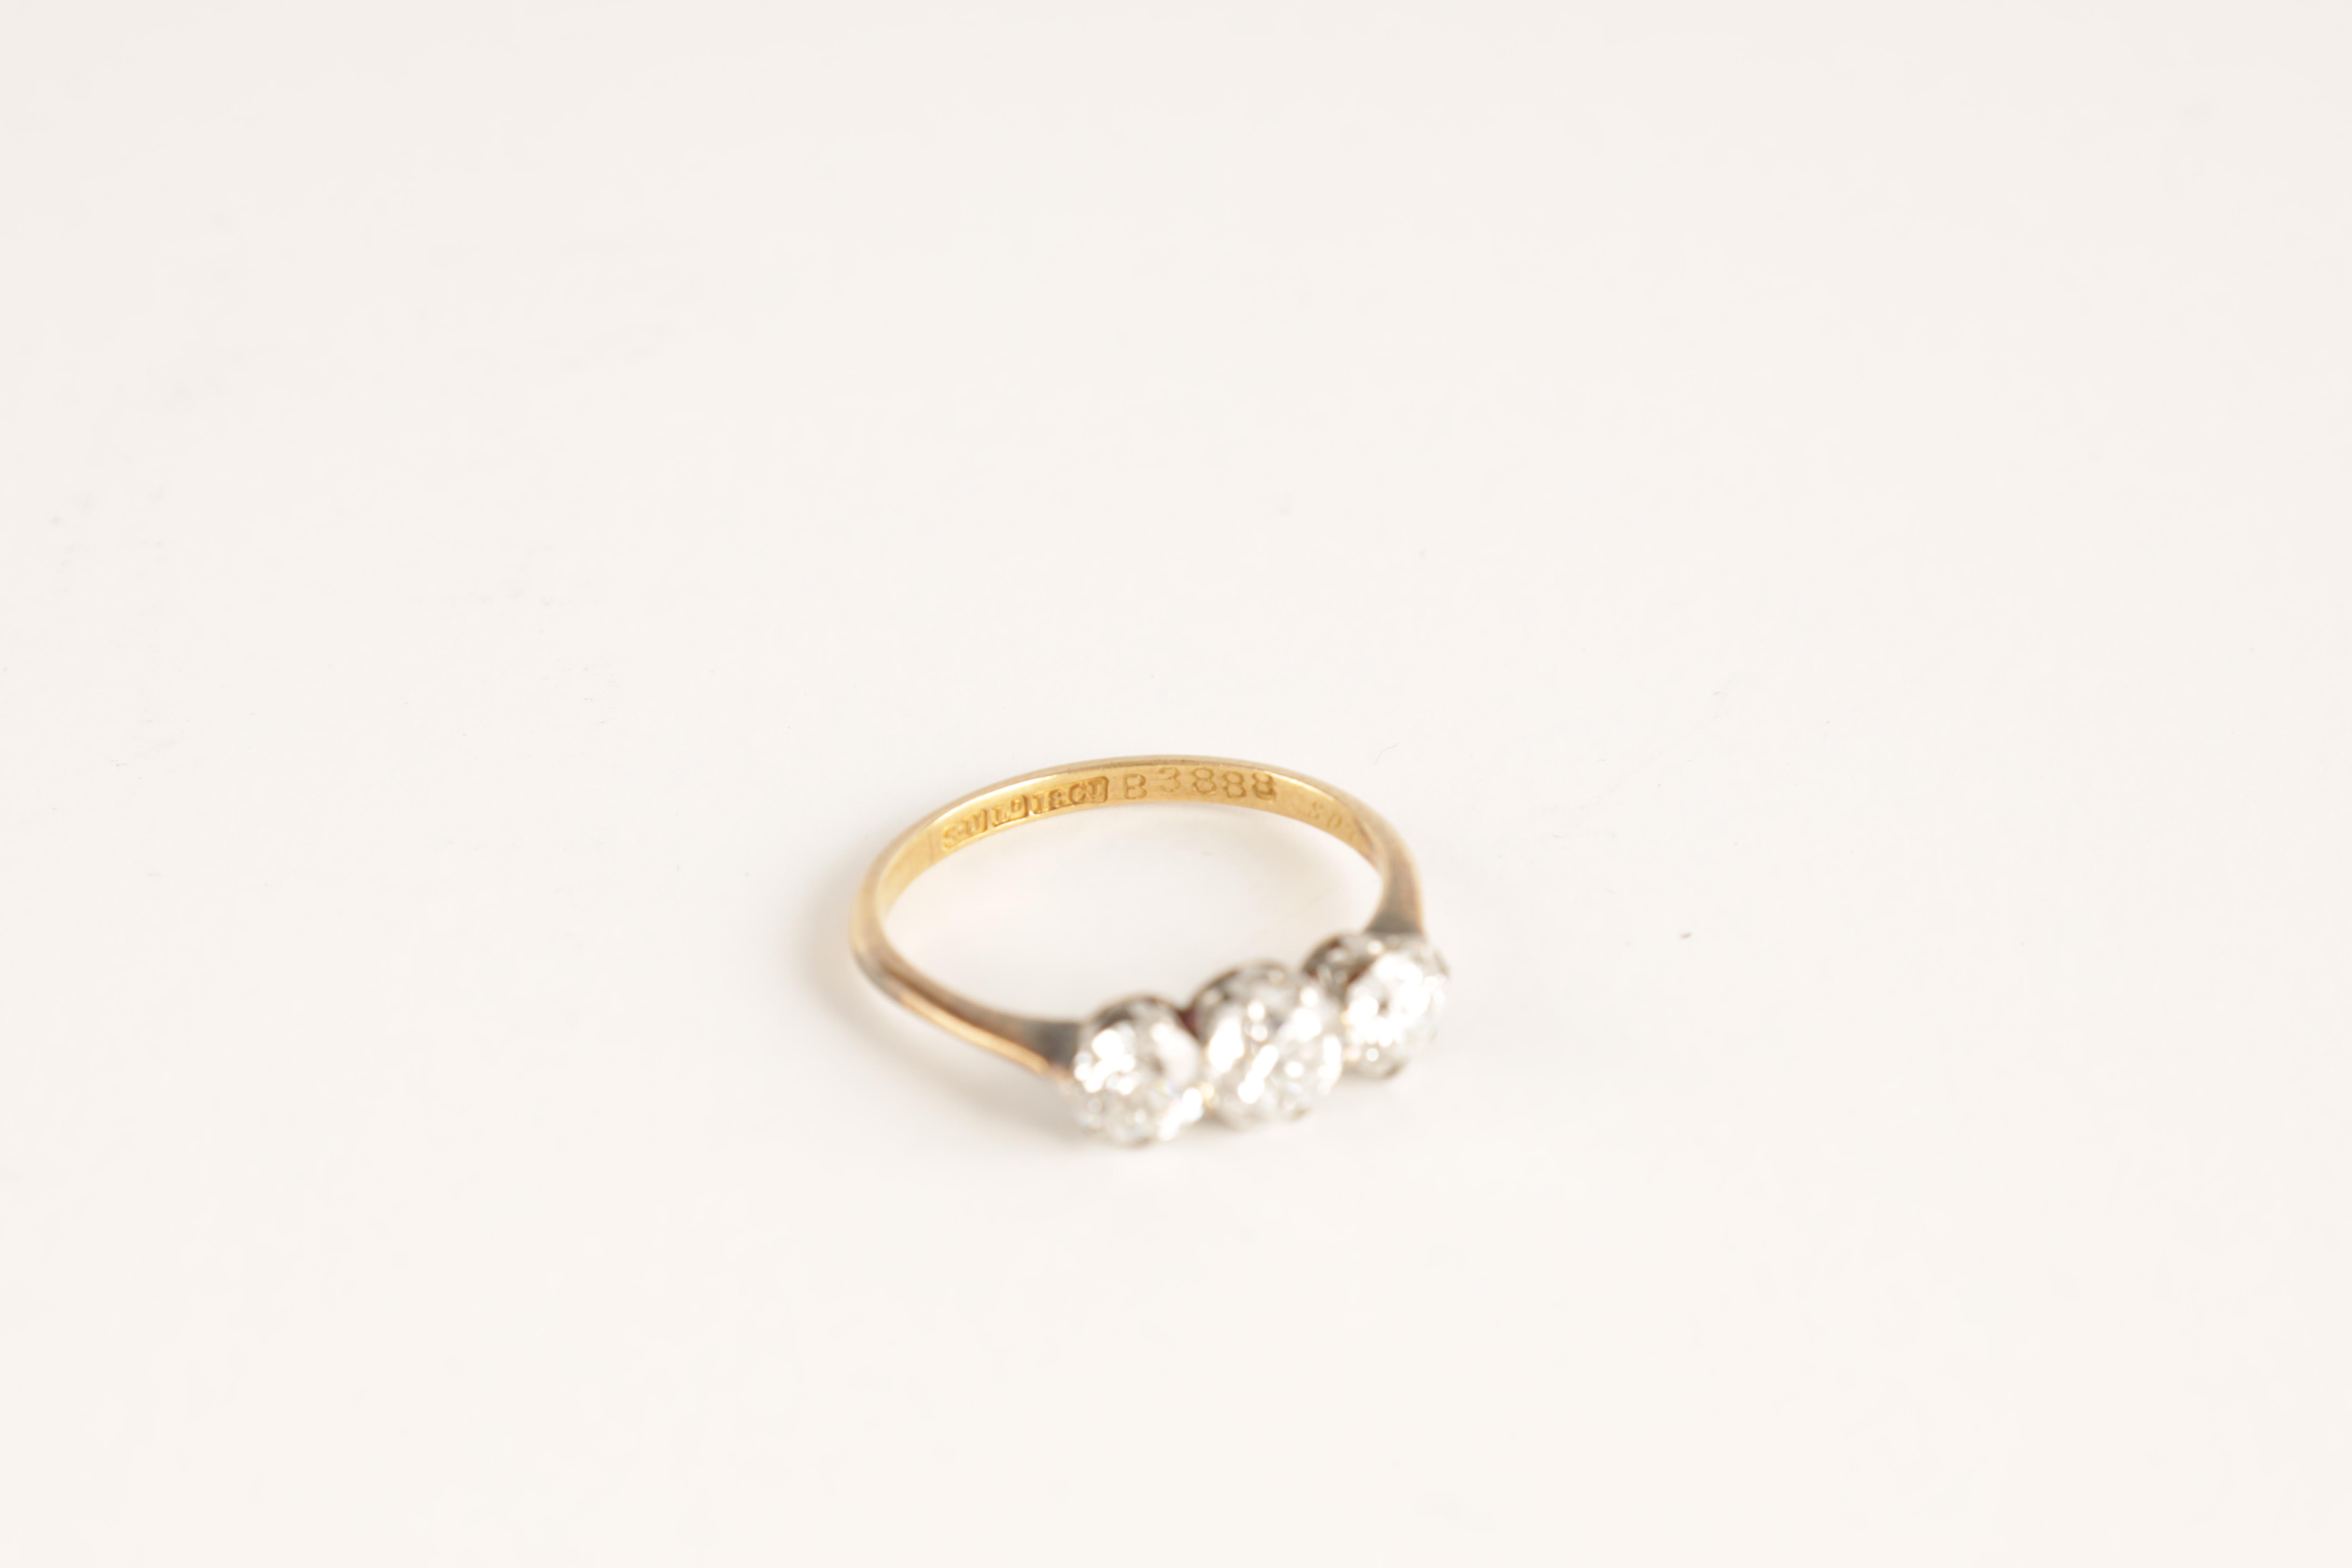 A LADIES THREE STONE DIAMOND RING on an 18ct gold shank, app. 1.2cts. of diamonds, clarity SI2, - Image 2 of 5